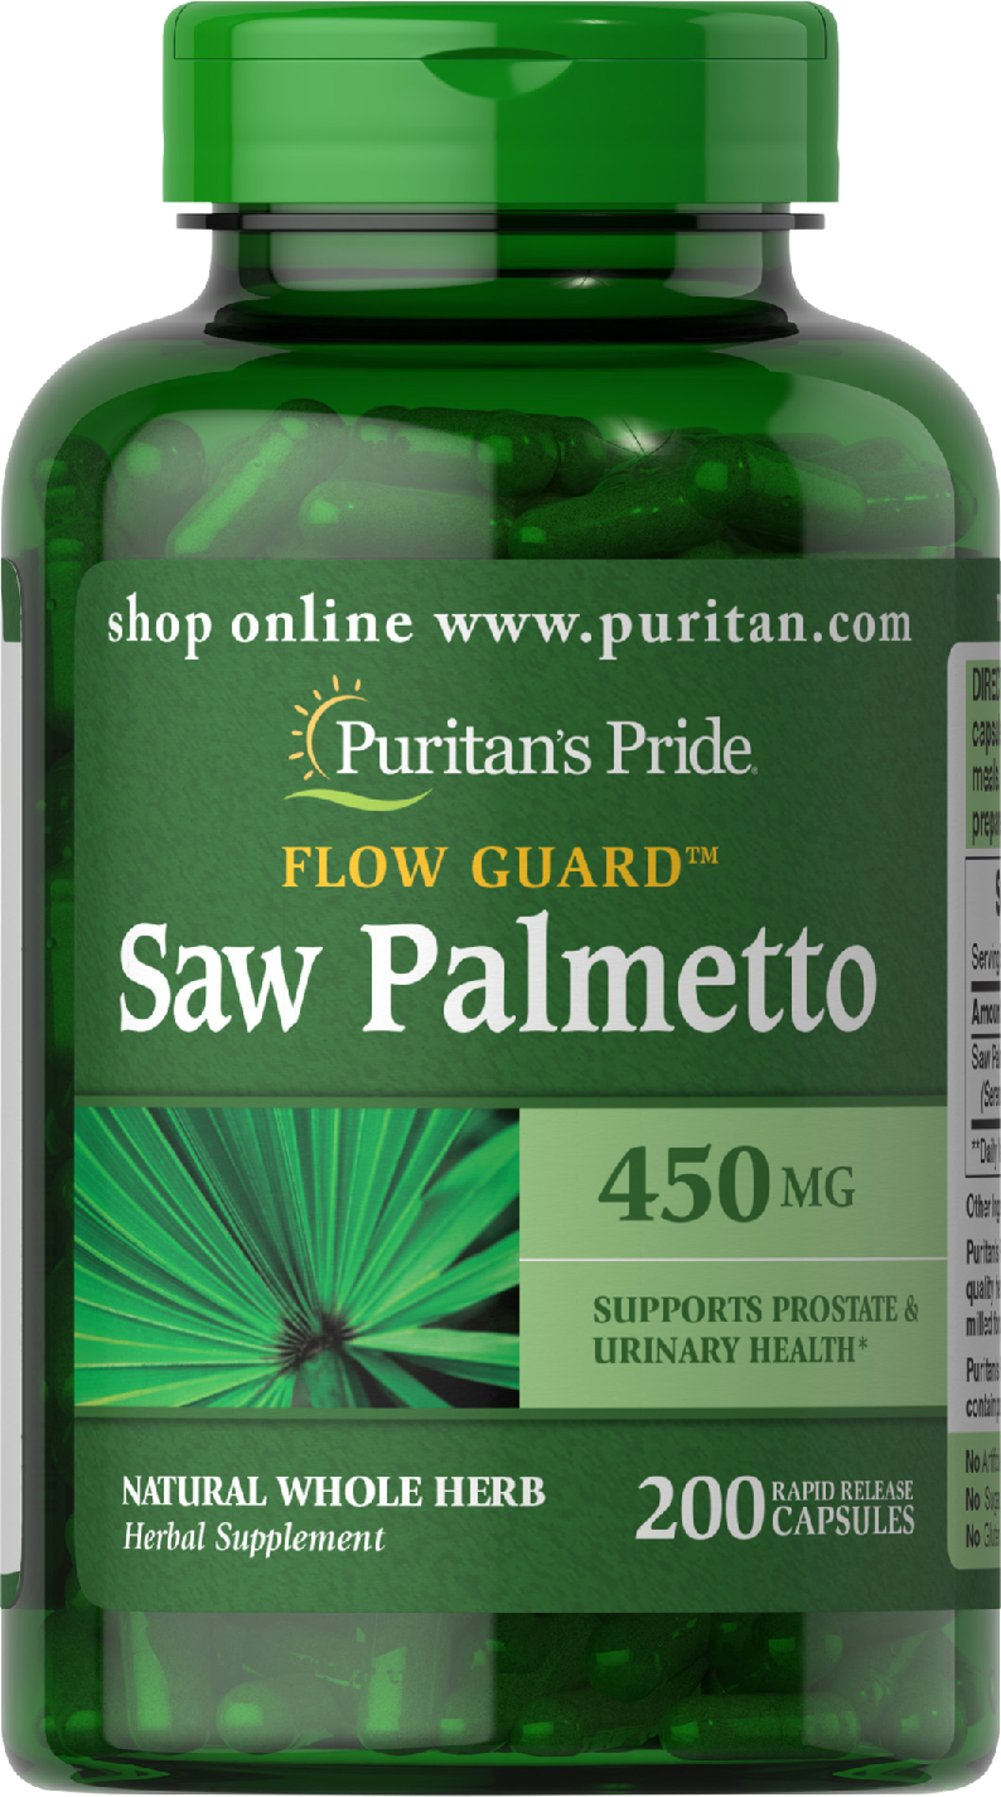 Saw Palmetto 450 mg <p></p>Saw Palmetto is an extract derived from the berry of the Saw Palmetto tree and is the leading herb for men's health.** Our high-quality softgels deliver 450 mg of Saw Palmetto, an herb that has been traditionally used to support prostate and urinary health in men, especially in later years.** Our extract provides a natural whole herb in a convenient to take softgel capsule. <br /><p></p> 200 Capsules 450 mg $14.99